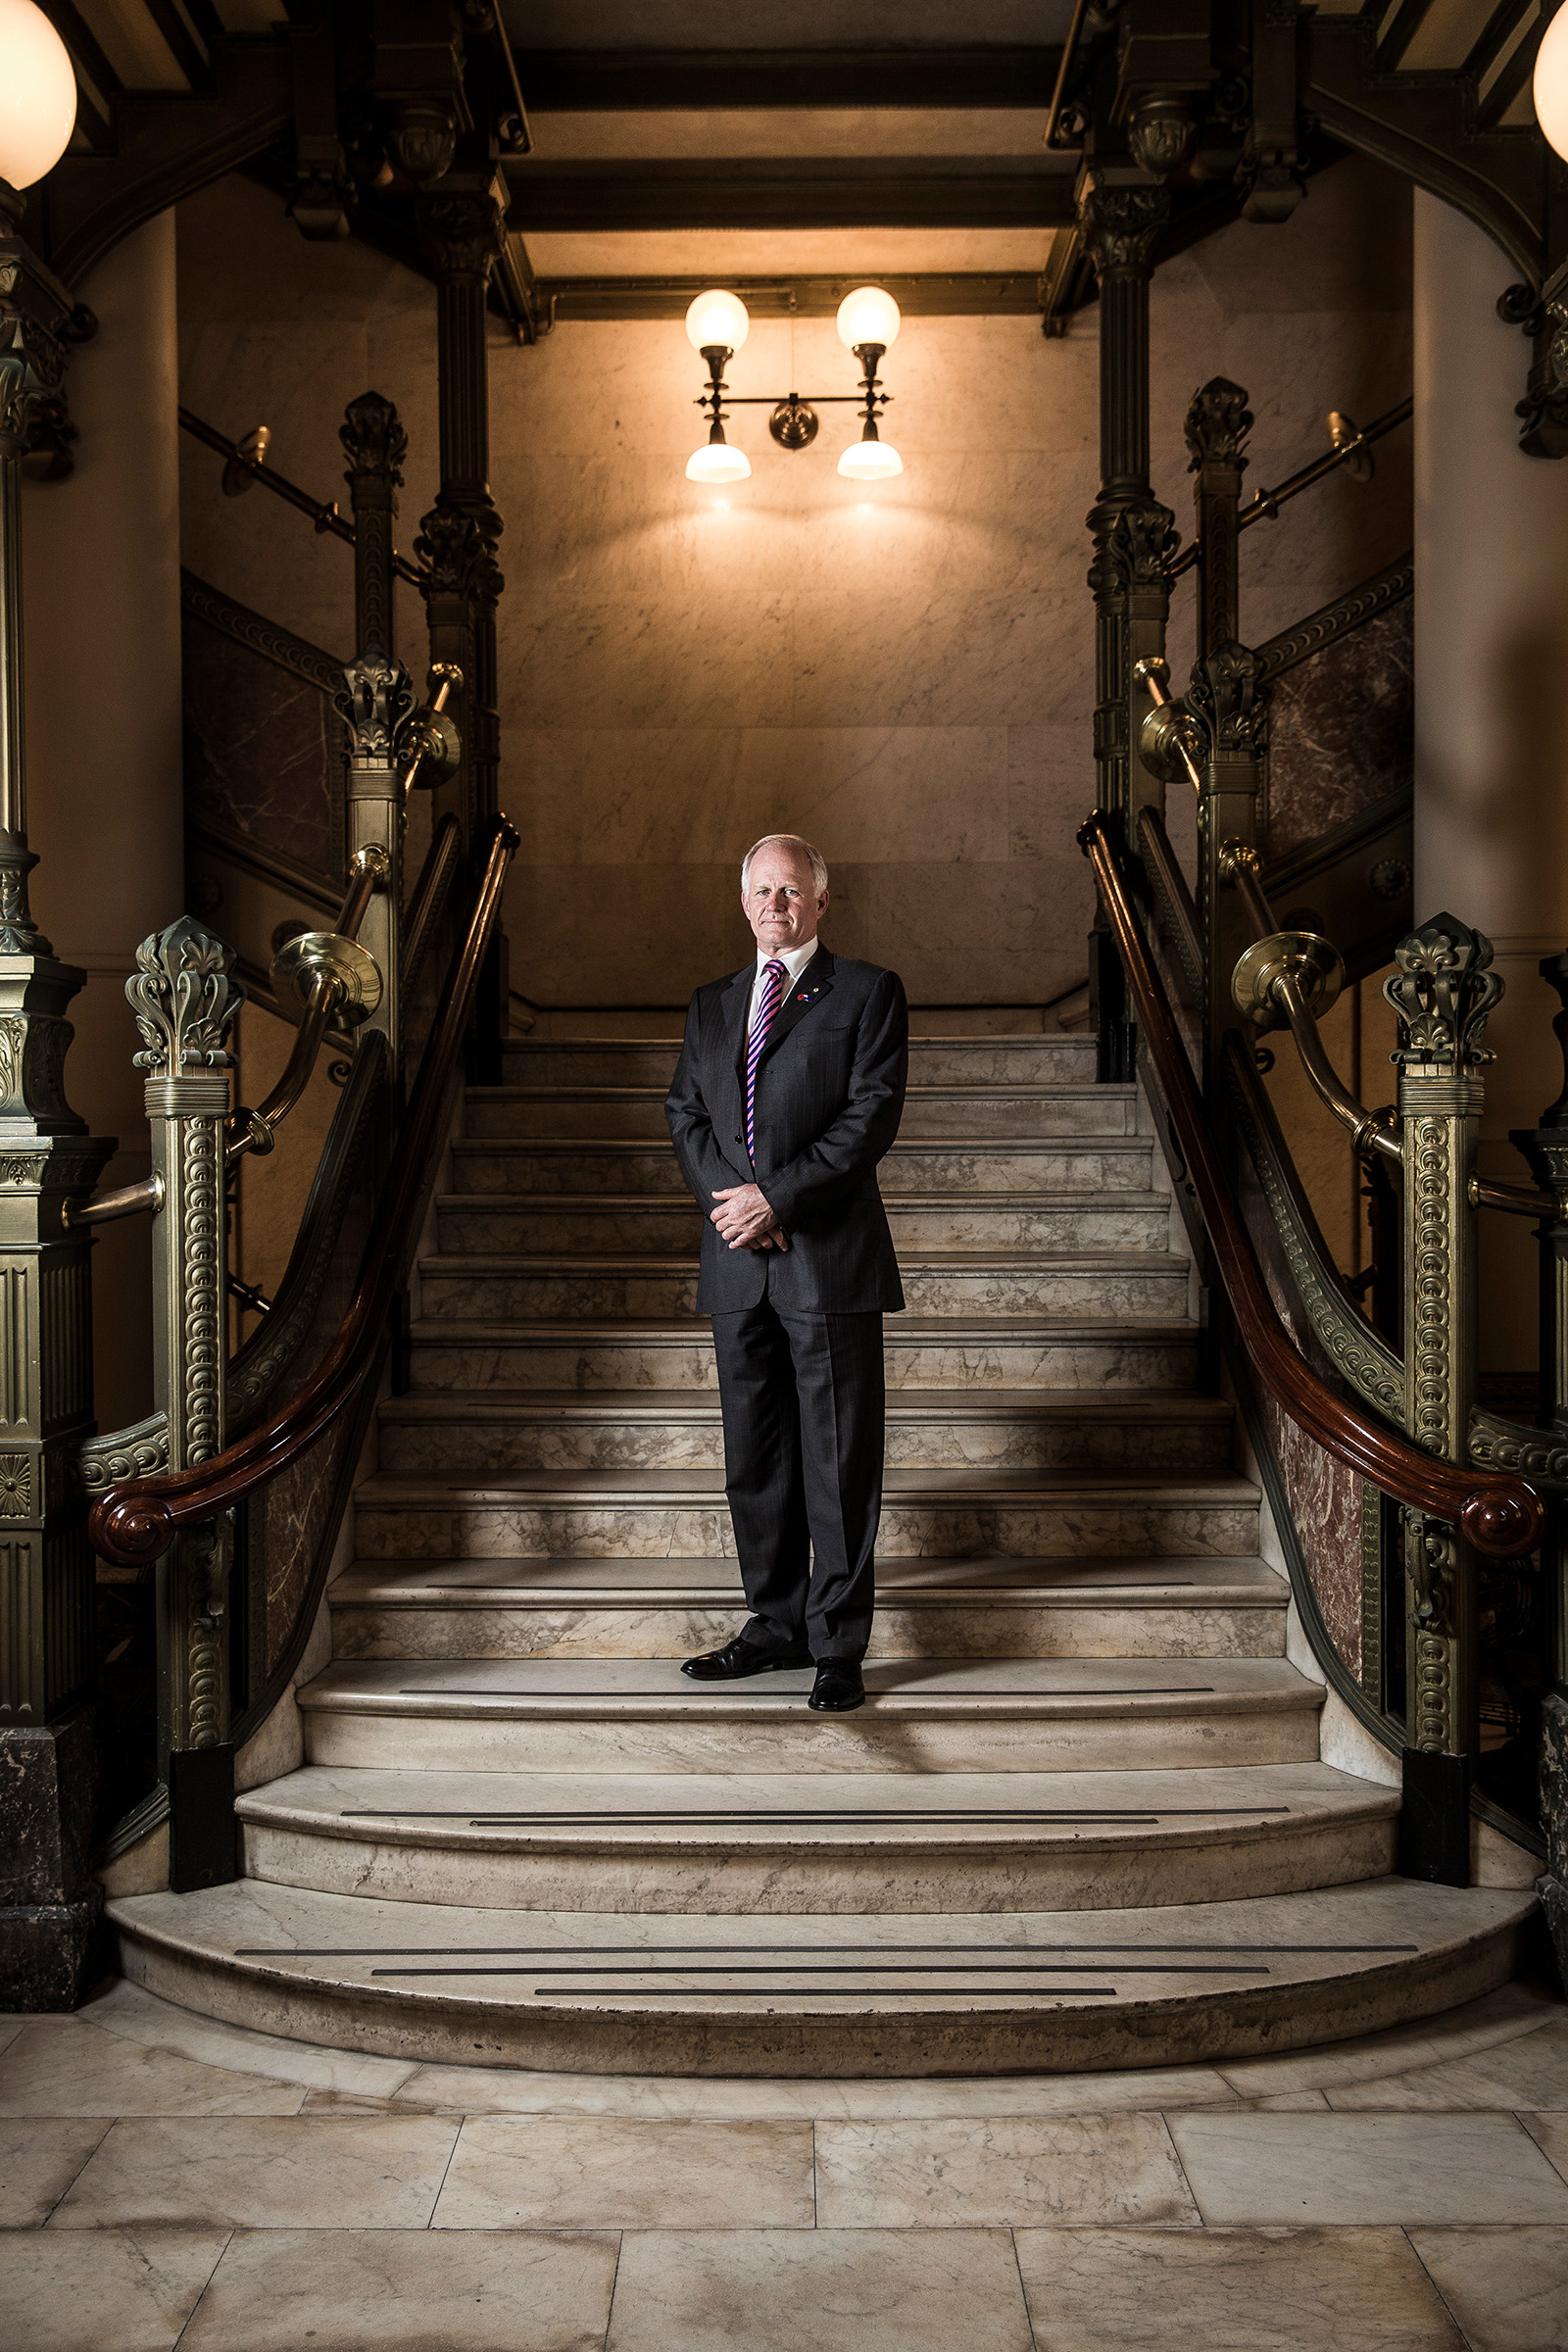 corporate male in historical building ornate staircase